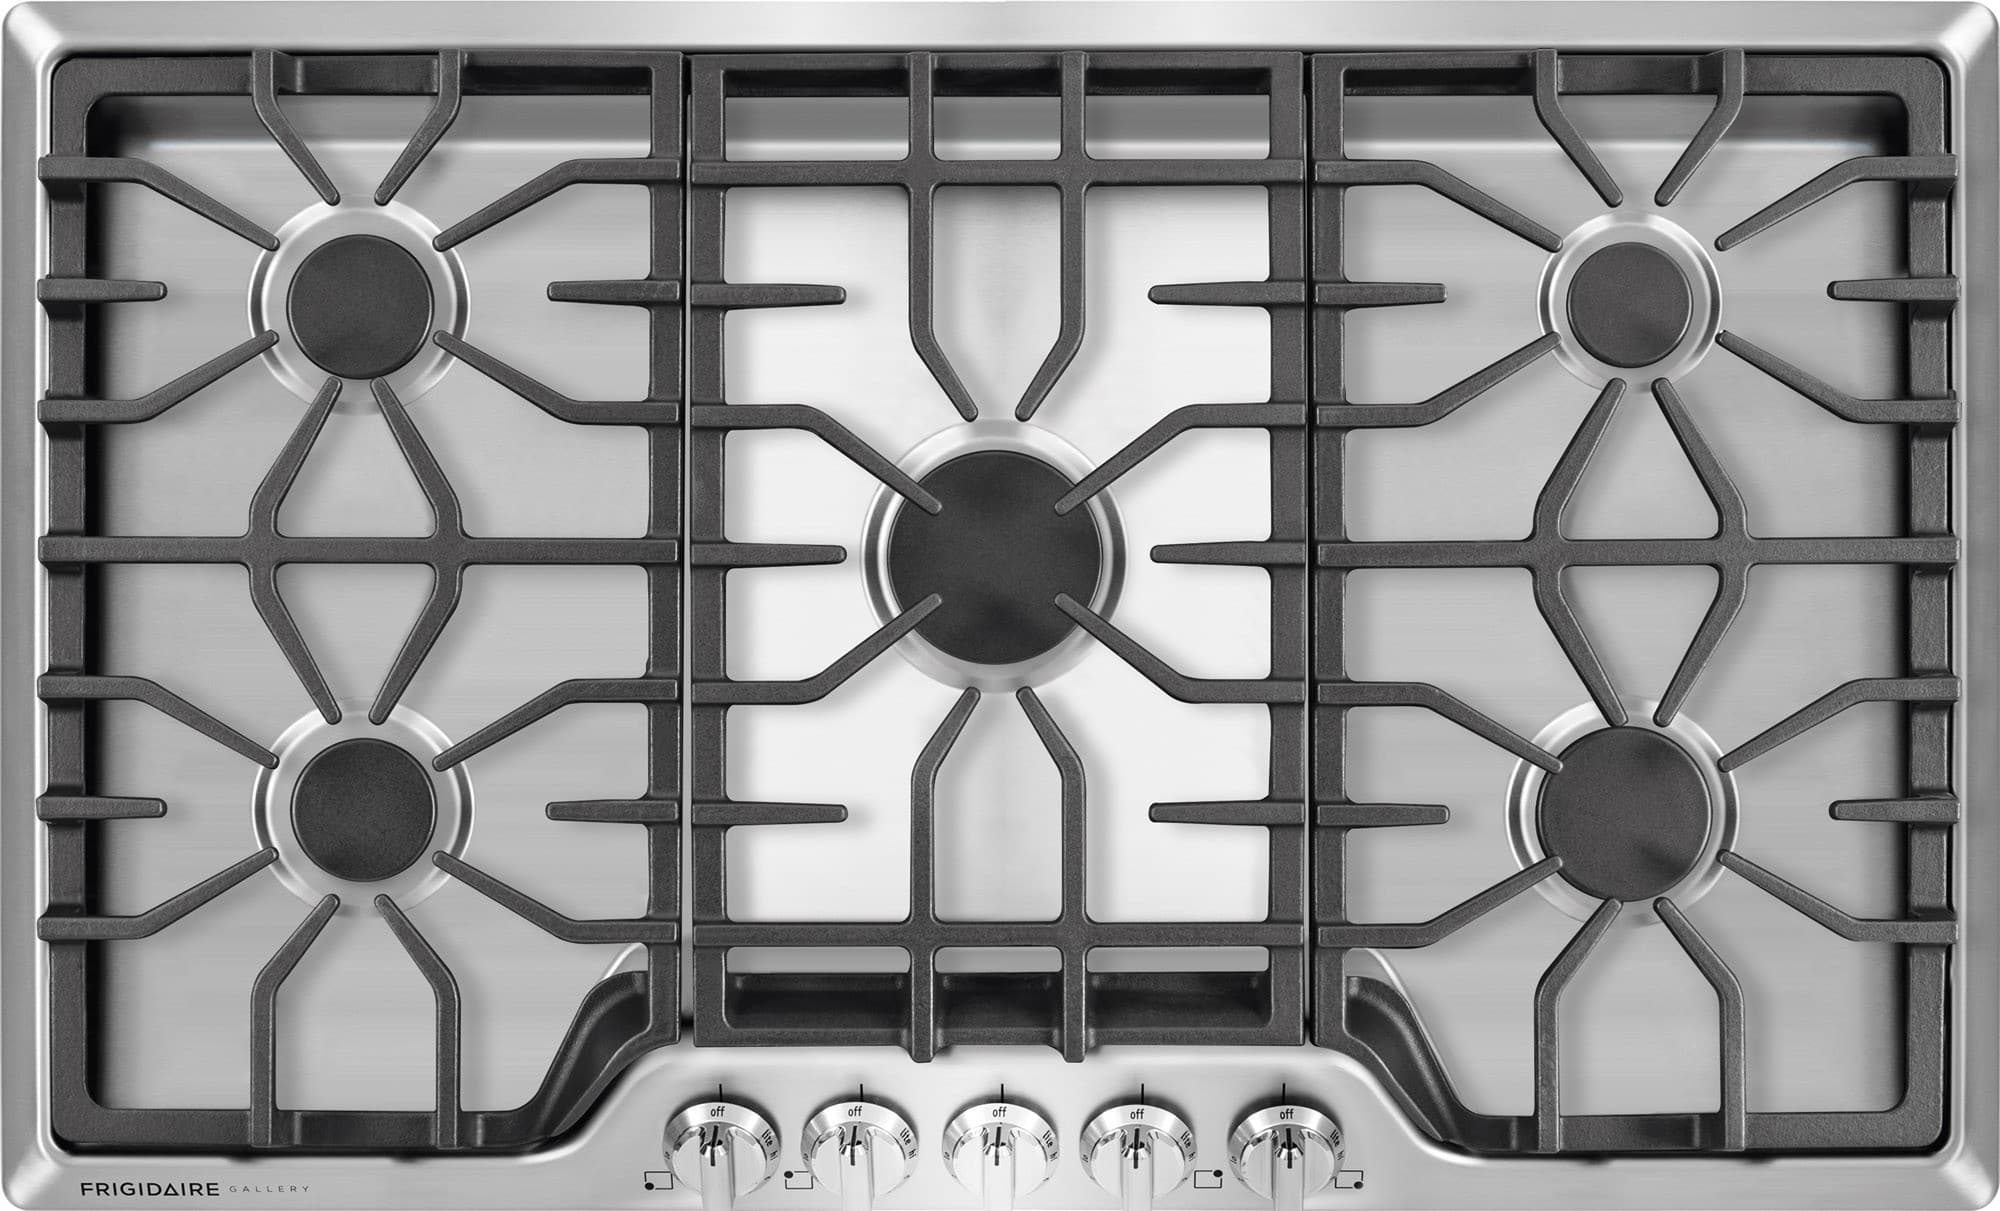 Frigidaire Fggc3645qs 36 Inch Gas Cooktop With 5 Sealed